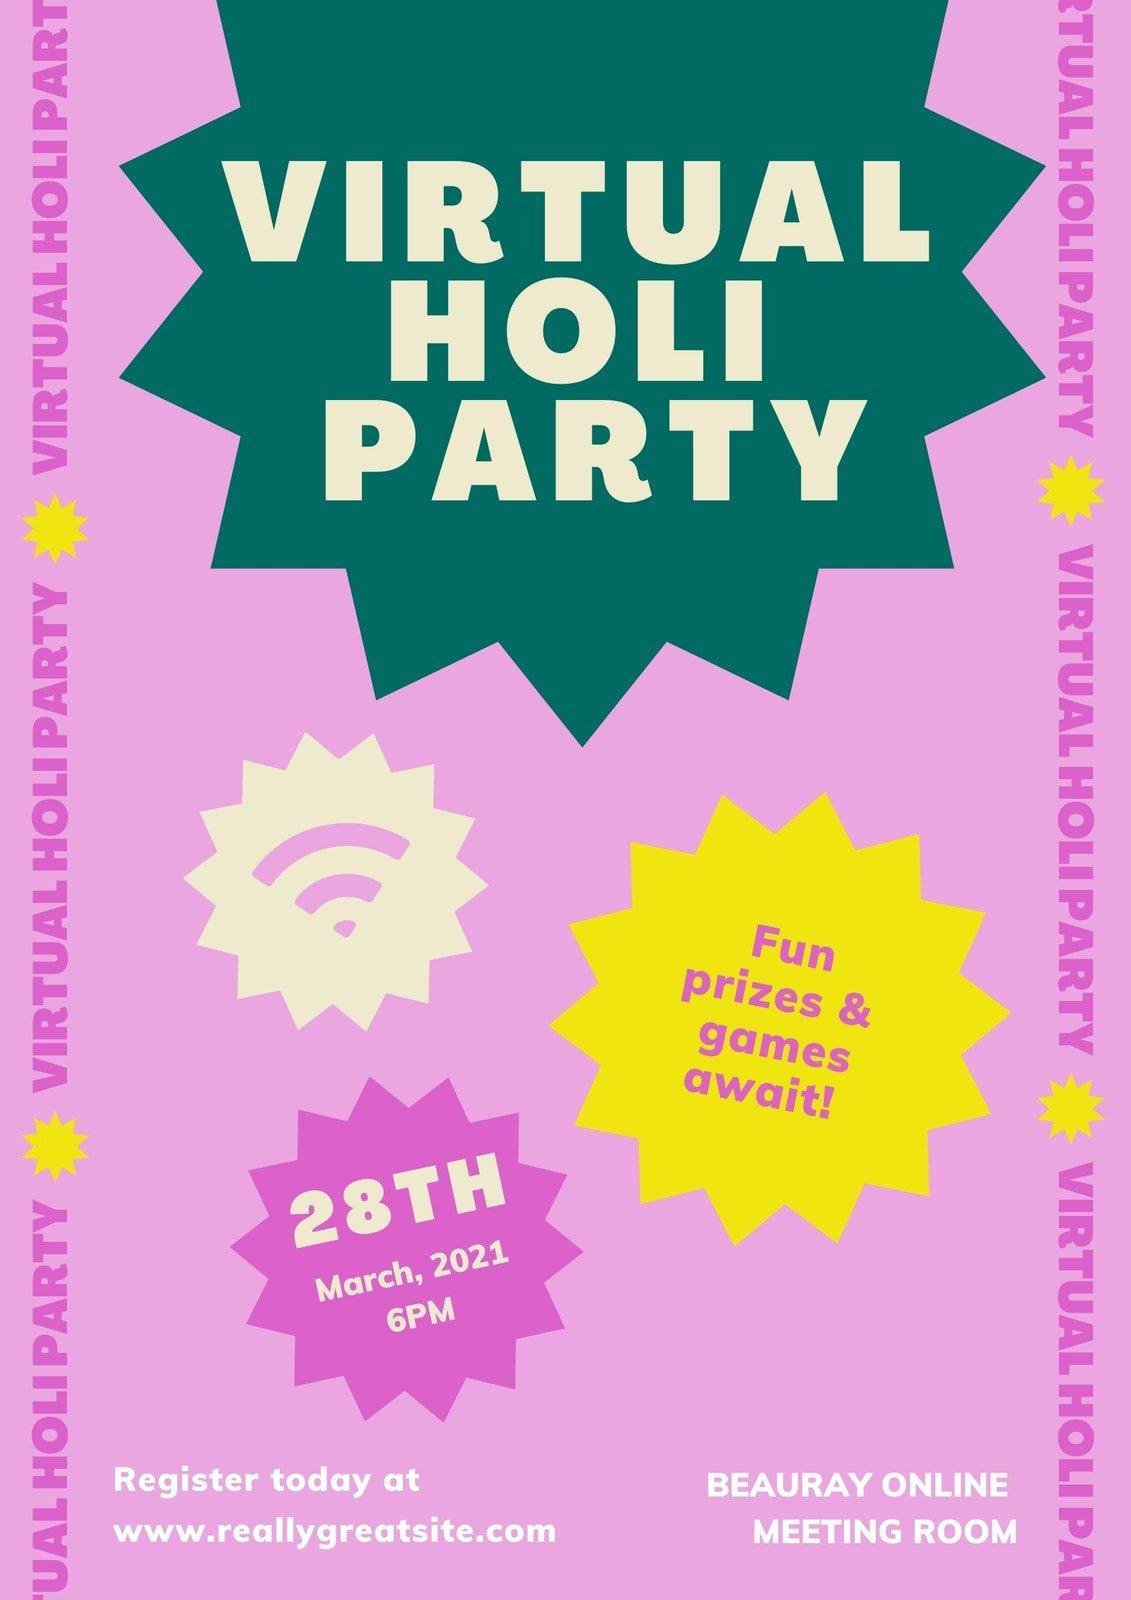 Pink Green and Yellow Maximalist Holi Festival Business Event Poster